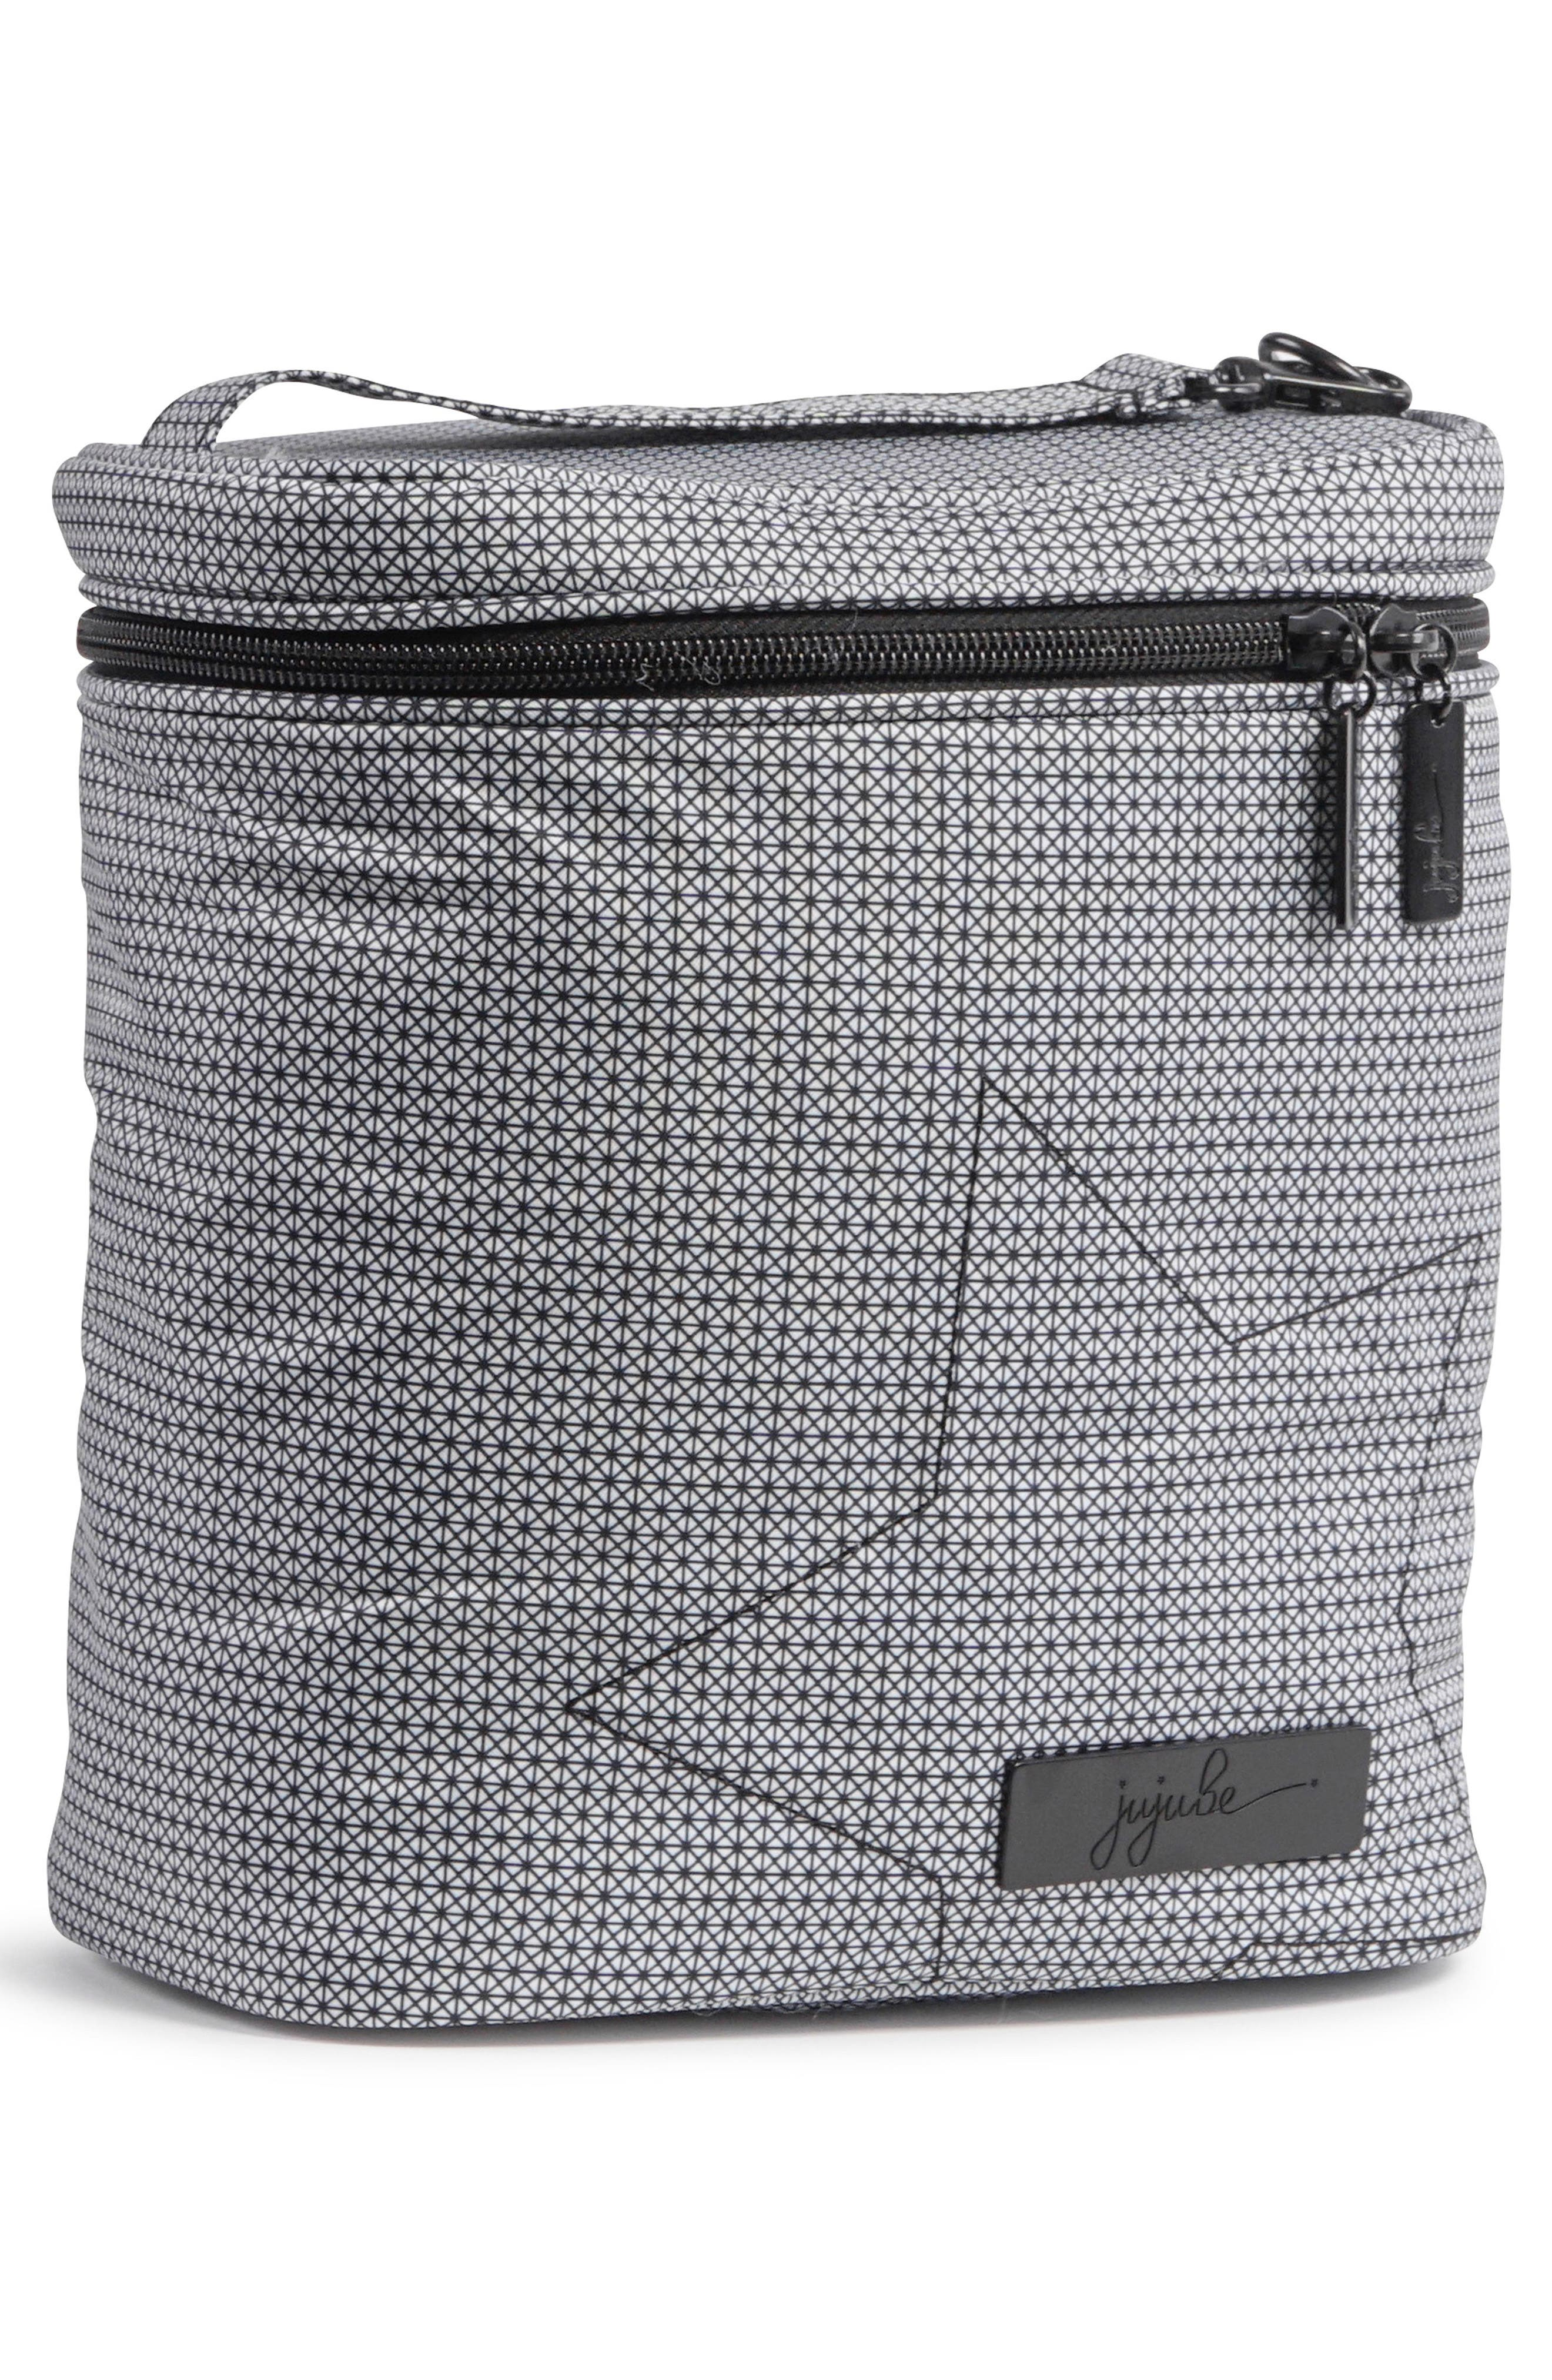 'Fuel Cell - Onyx Collection' Lunch Bag,                             Alternate thumbnail 2, color,                             Black Matrix